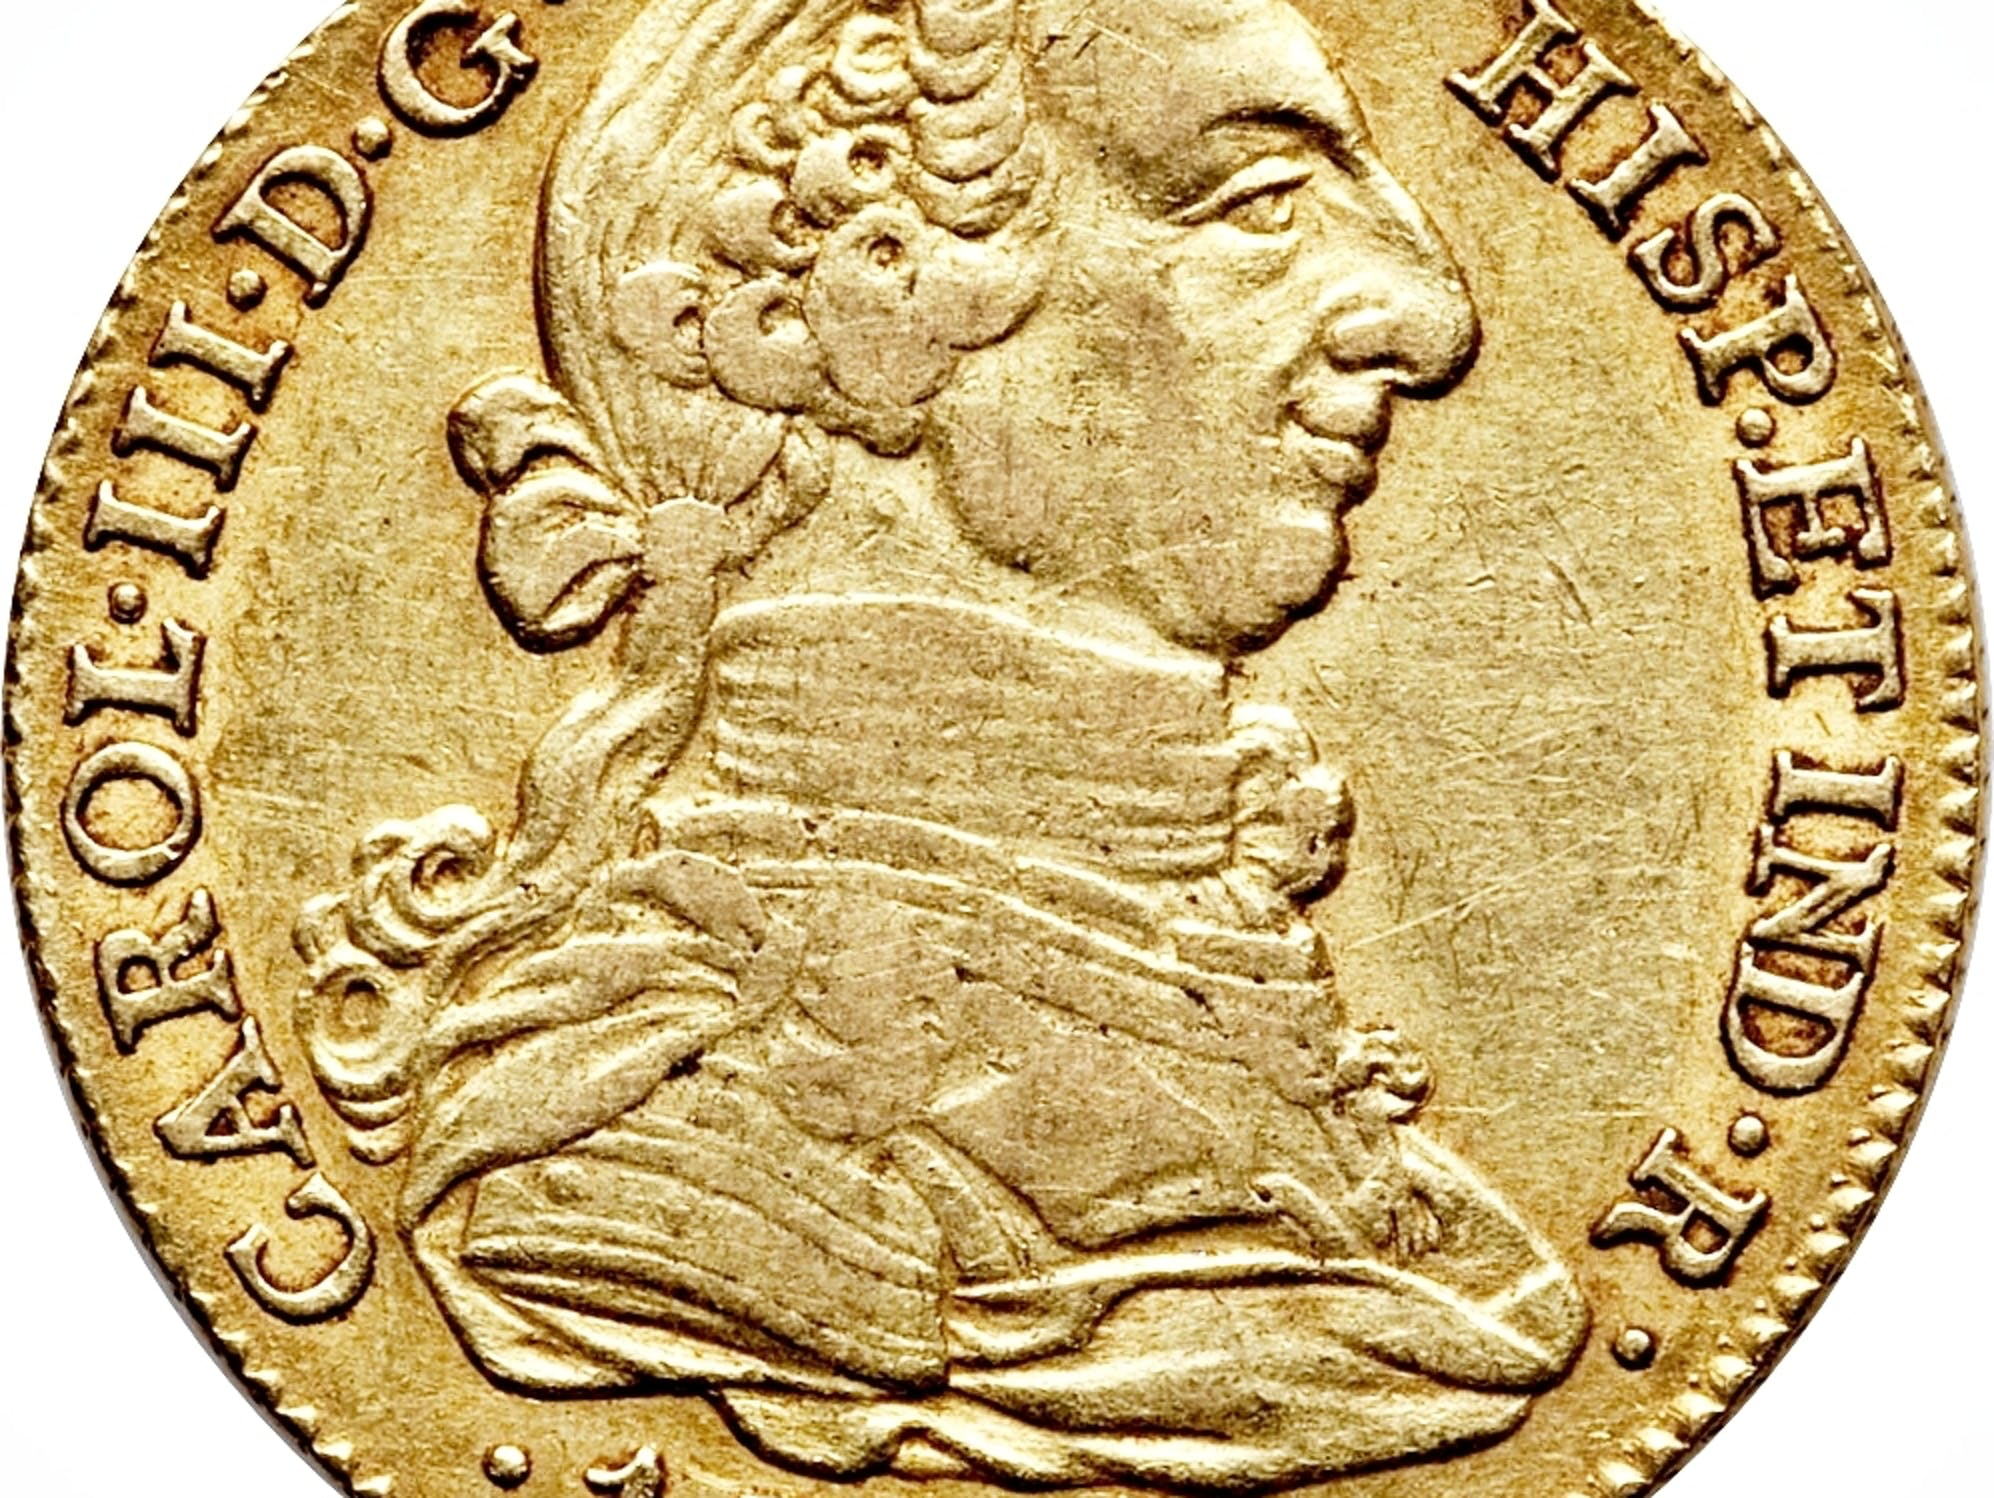 Spanish gold 4-doubloon coins.